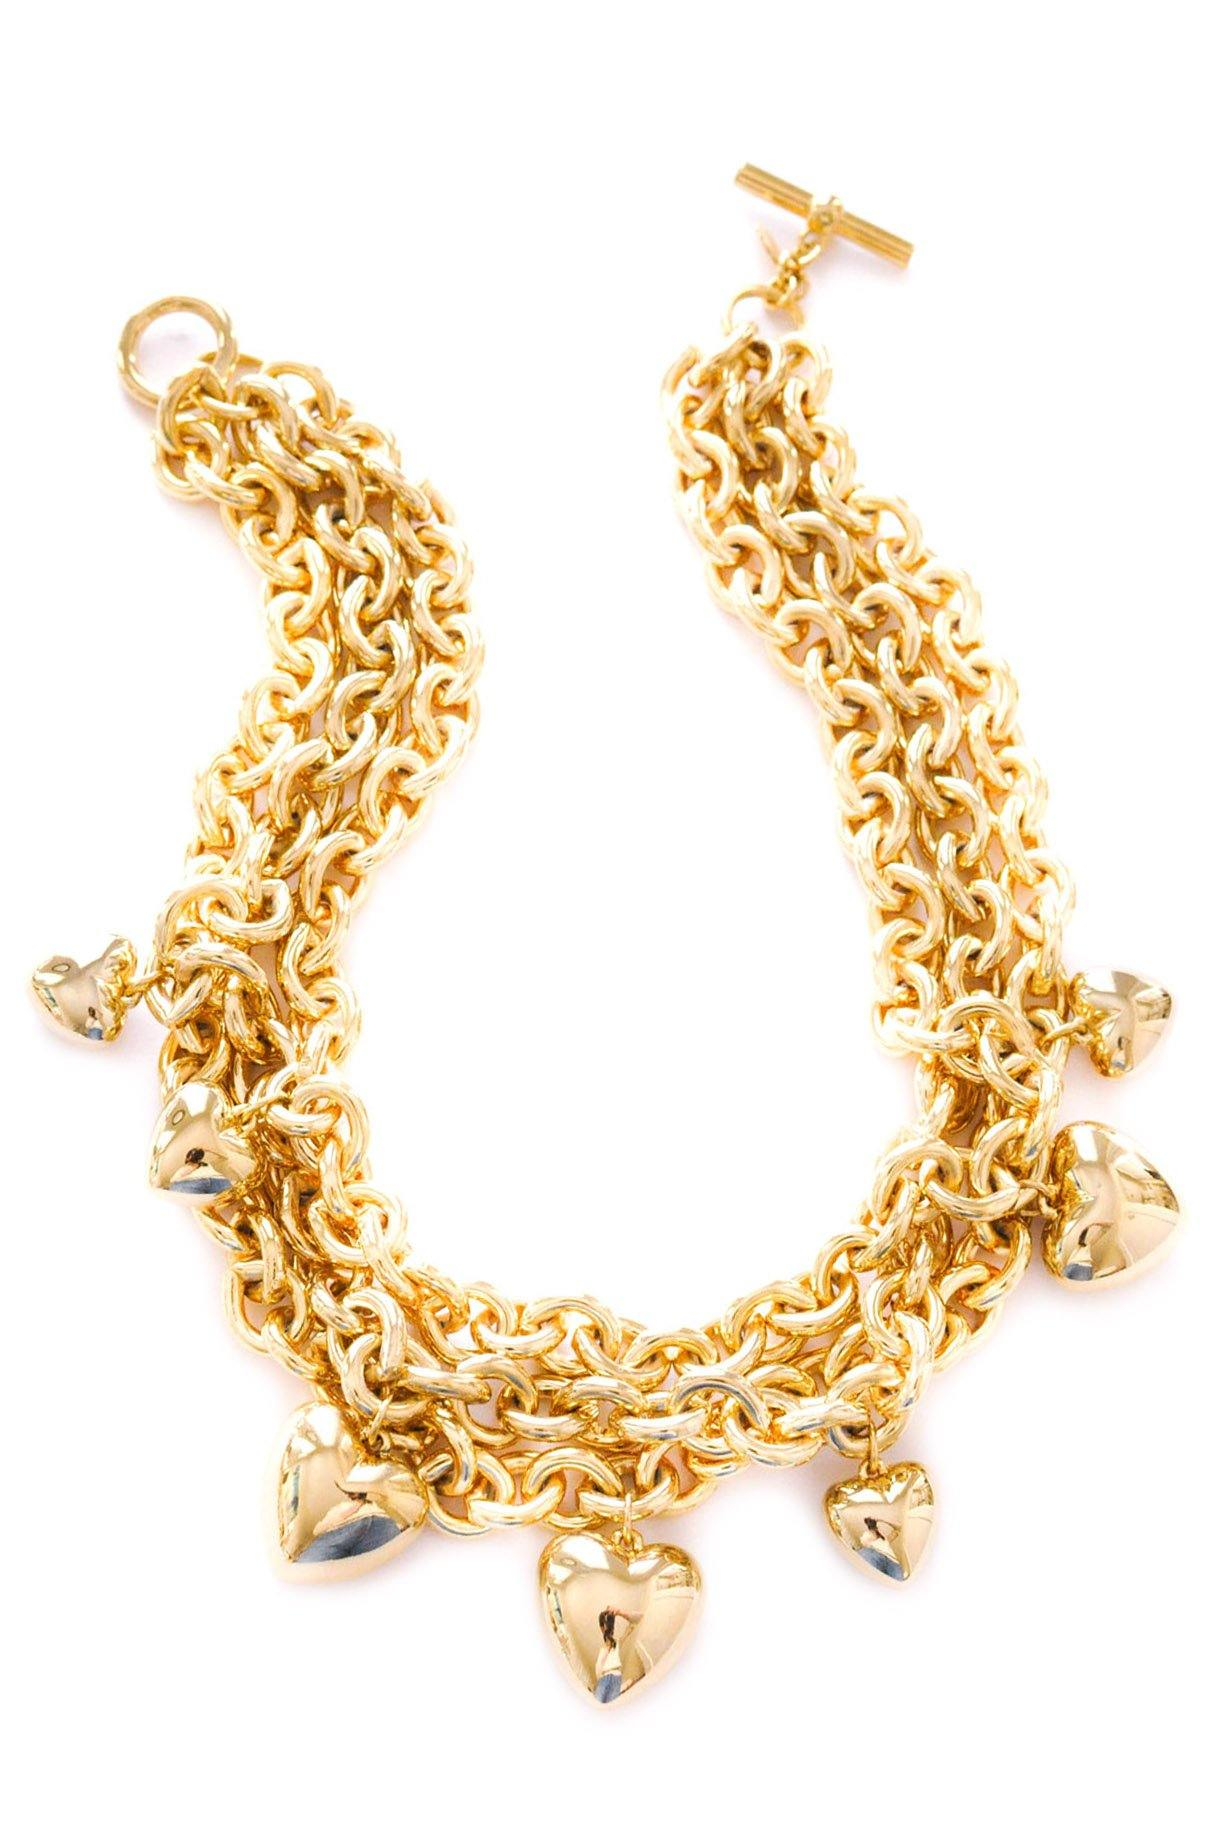 Vintage Joan Rivers Gold Chunky Heart Statement Necklace from Sweet & Spark